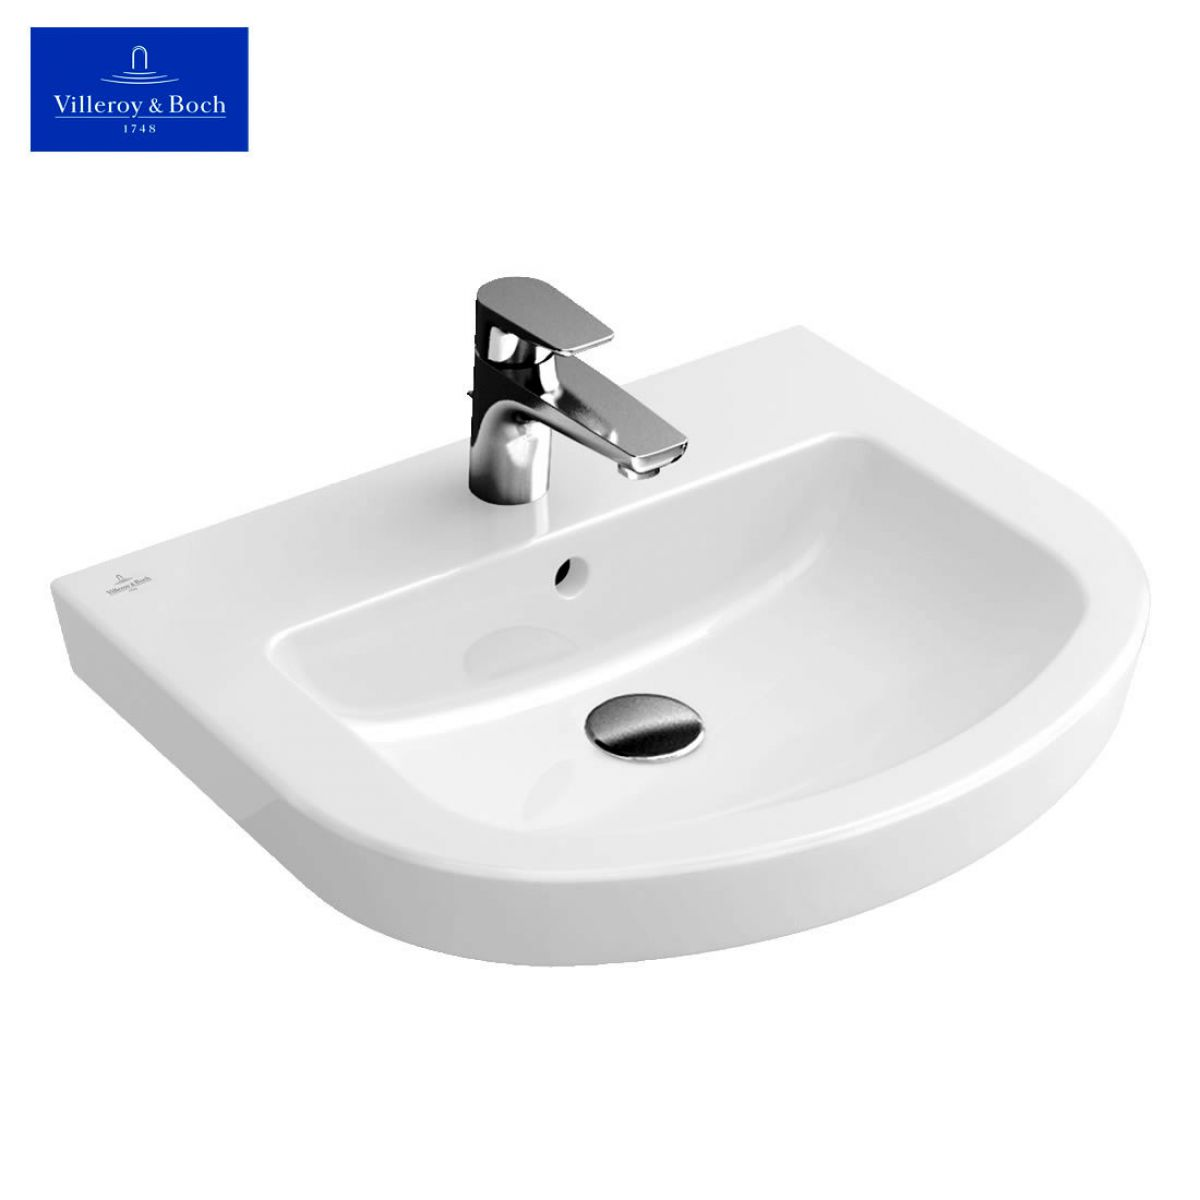 villeroy boch subway 2 0 curved washbasin for vanity. Black Bedroom Furniture Sets. Home Design Ideas